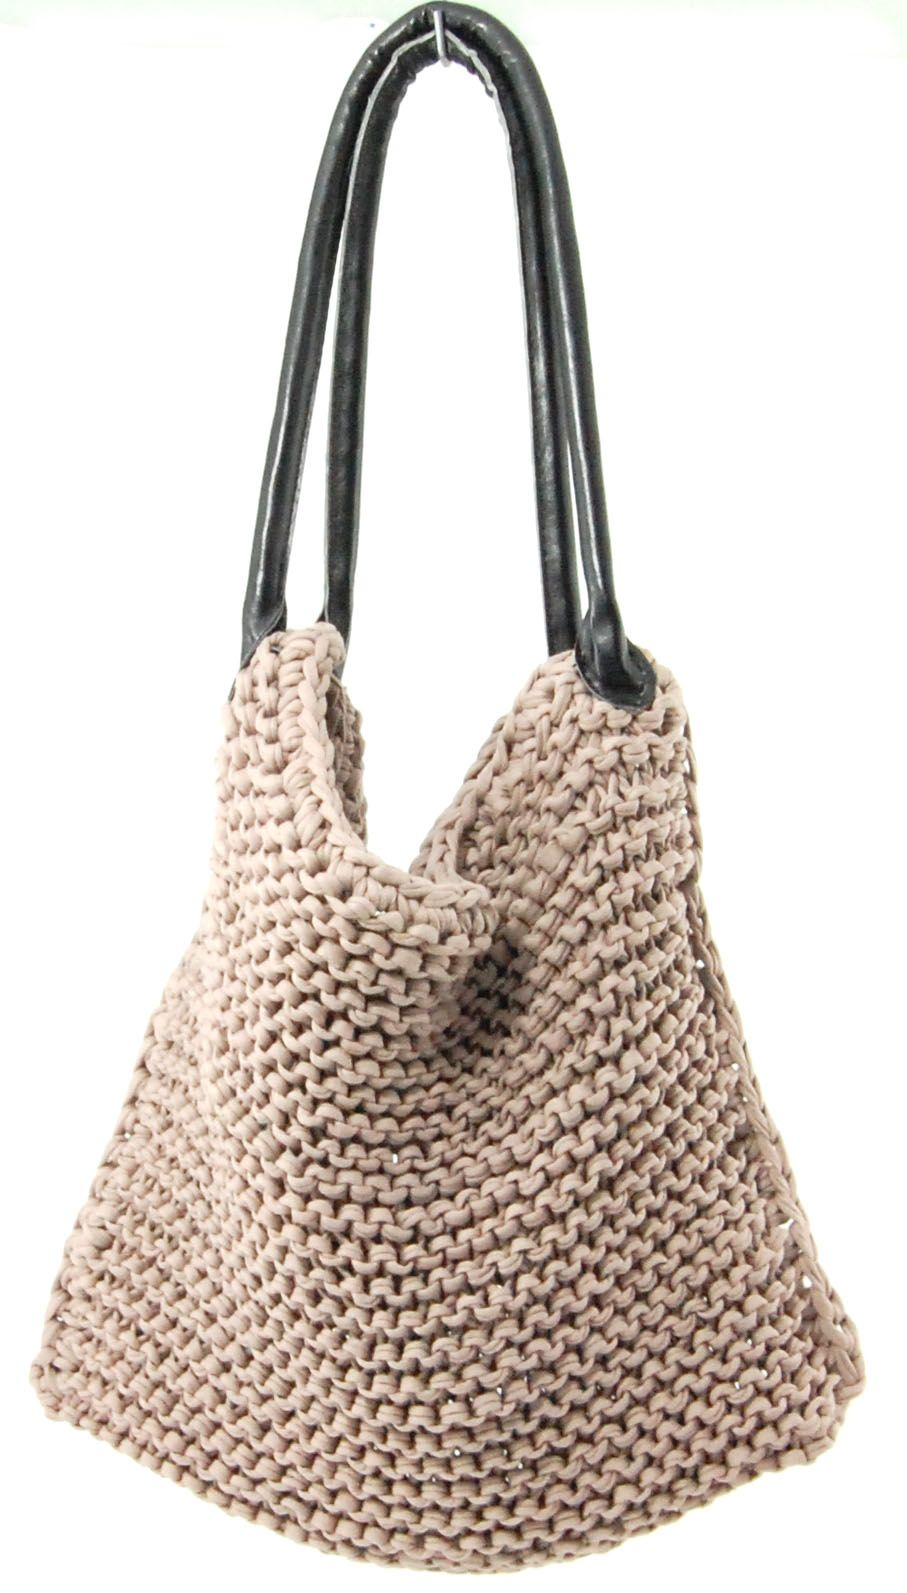 Knitted bag tutorial | Knitted bags, Bag and Crochet